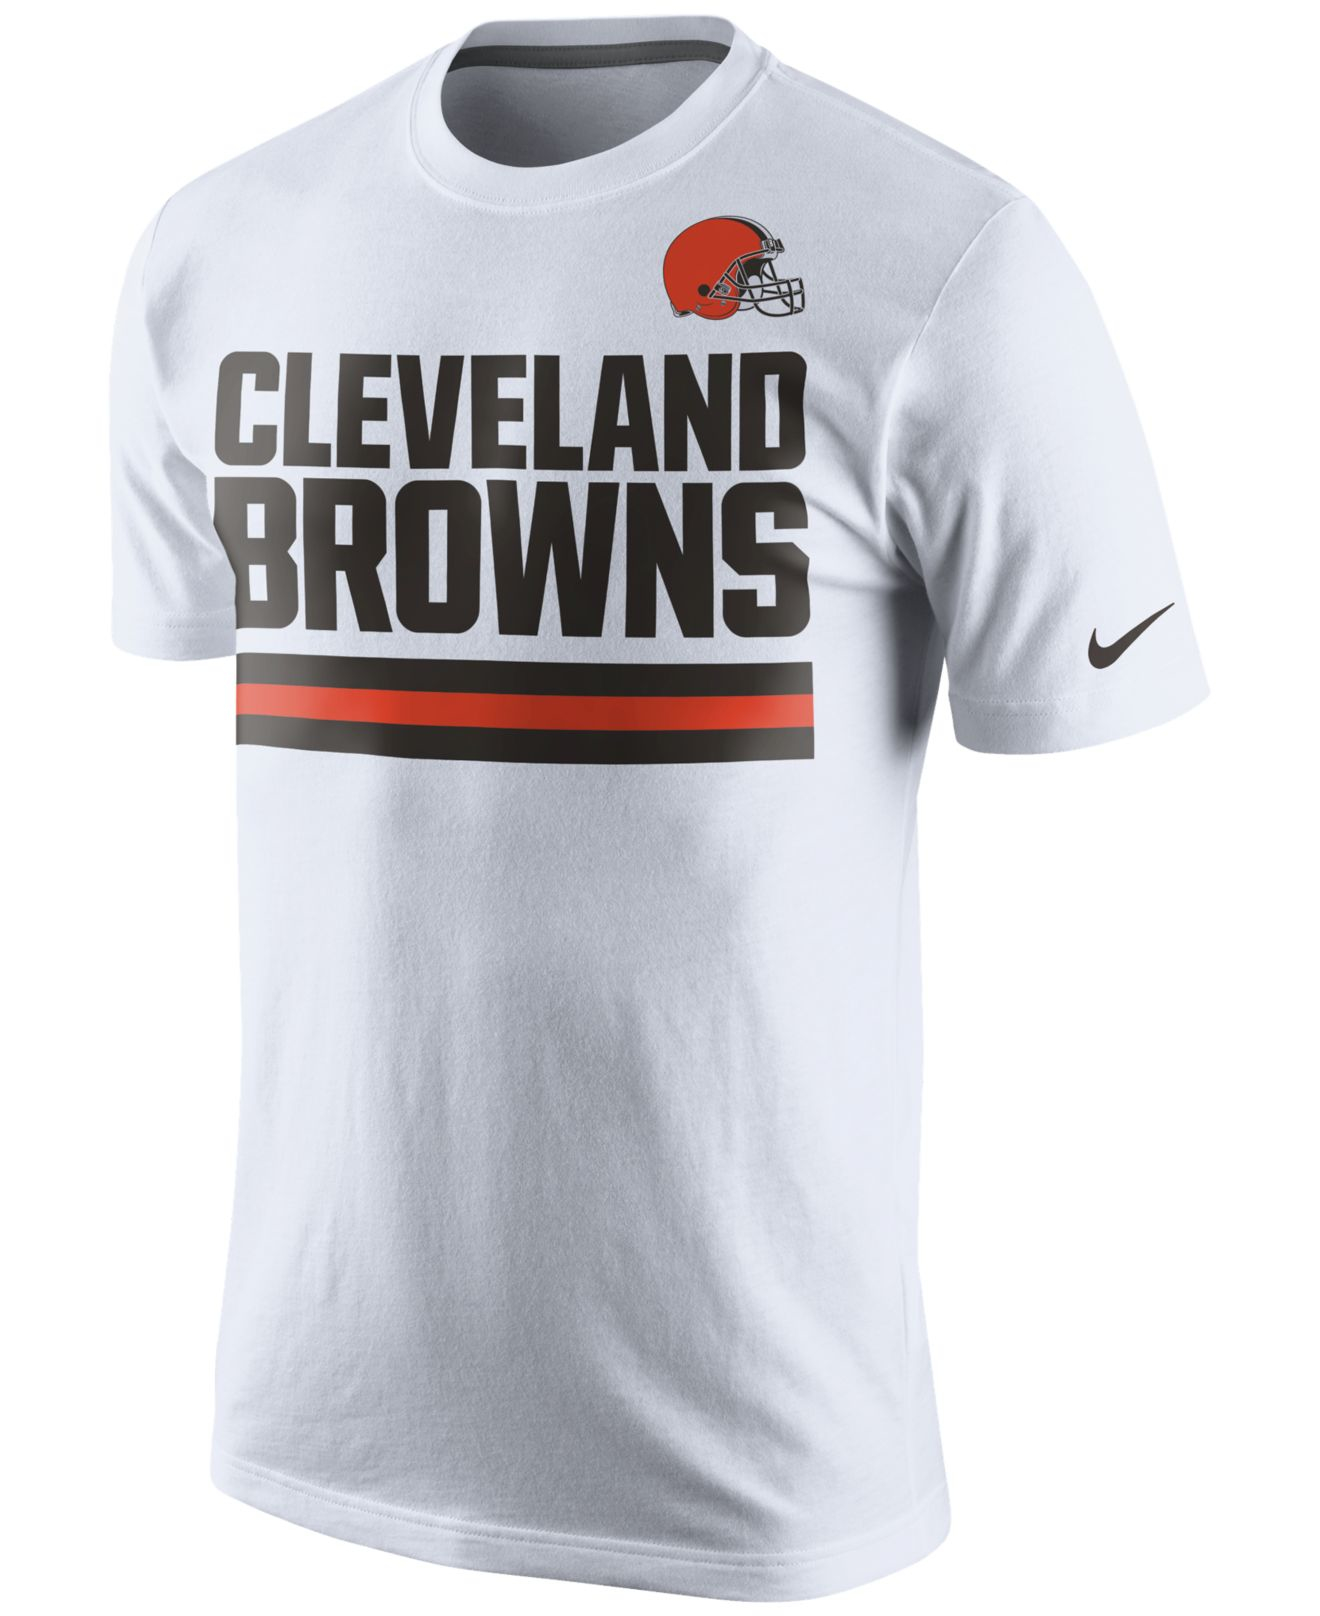 7aa60ccc022 Nike Men's Cleveland Browns Team Stripe T-shirt in White for Men - Lyst